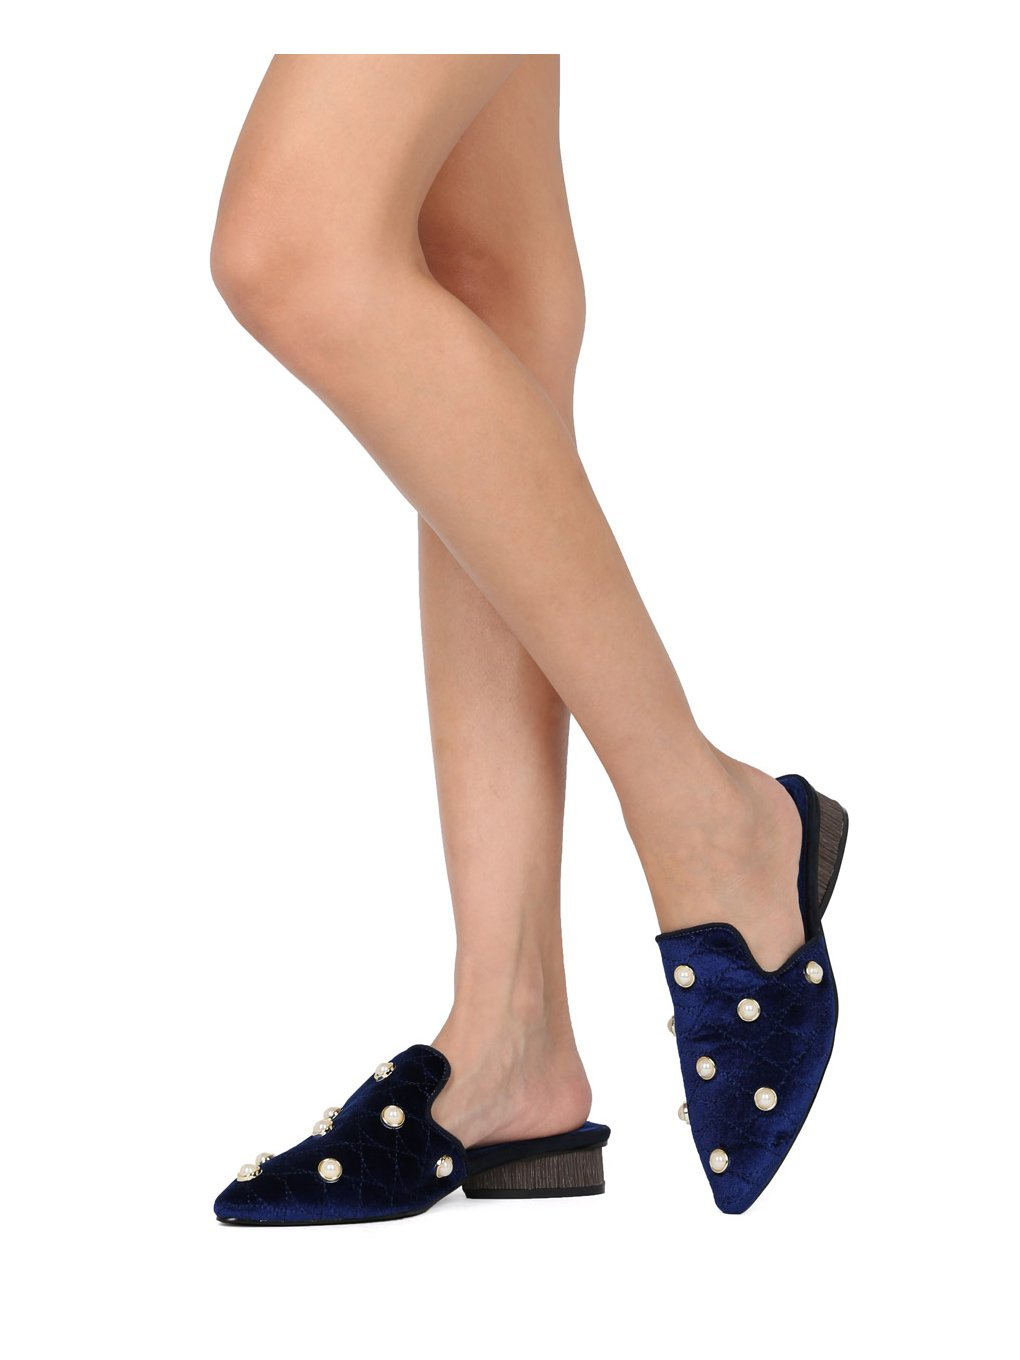 Alrisco Women Quilted Velvet Faux Pearl Pointy Toe Low Heel Mule HE91 - Navy Velvet (Size: 9.0) by Alrisco (Image #6)